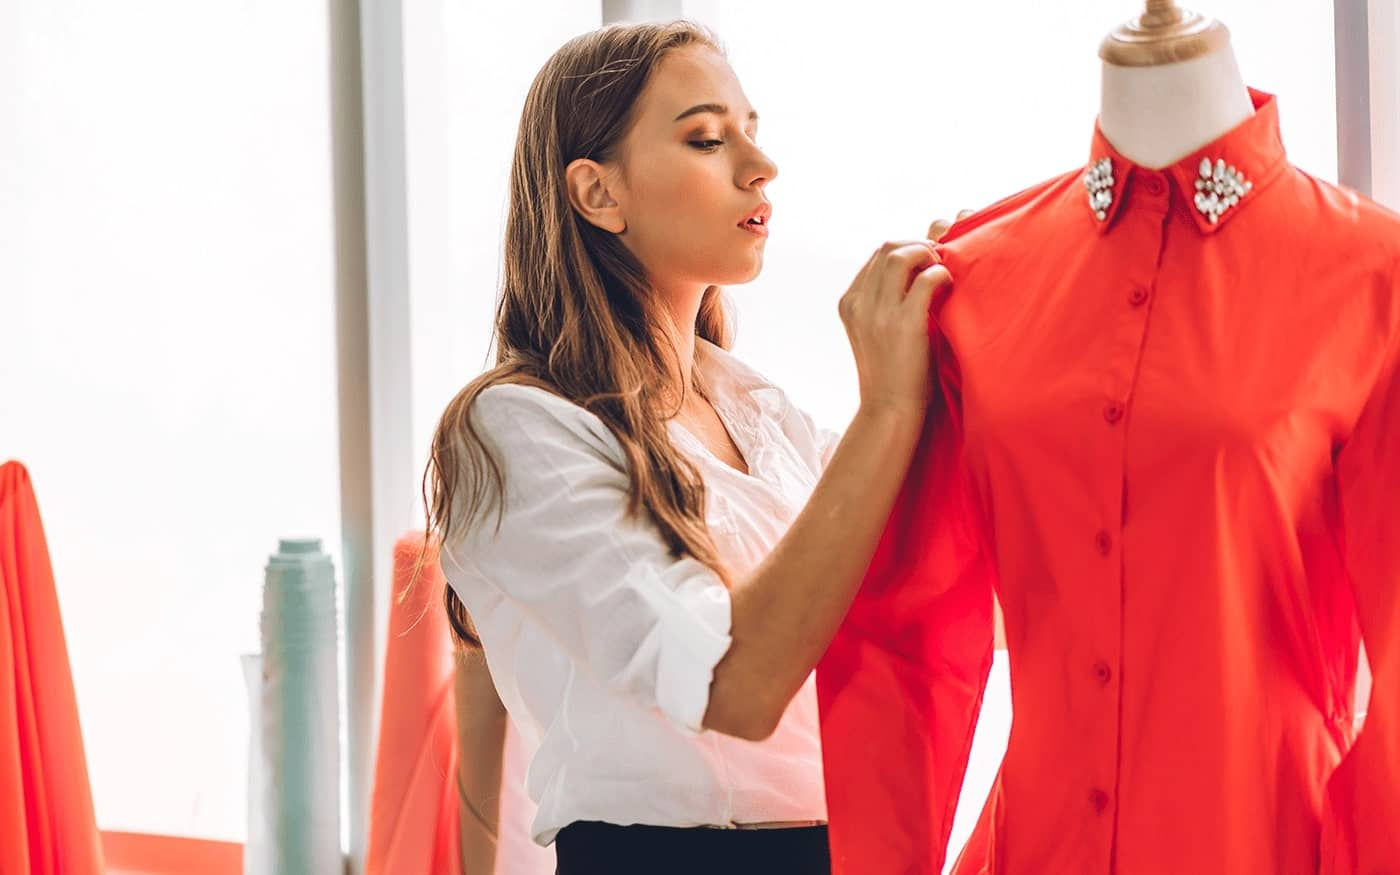 How Is Blockchain Technology Transforming the Fashion Industry?